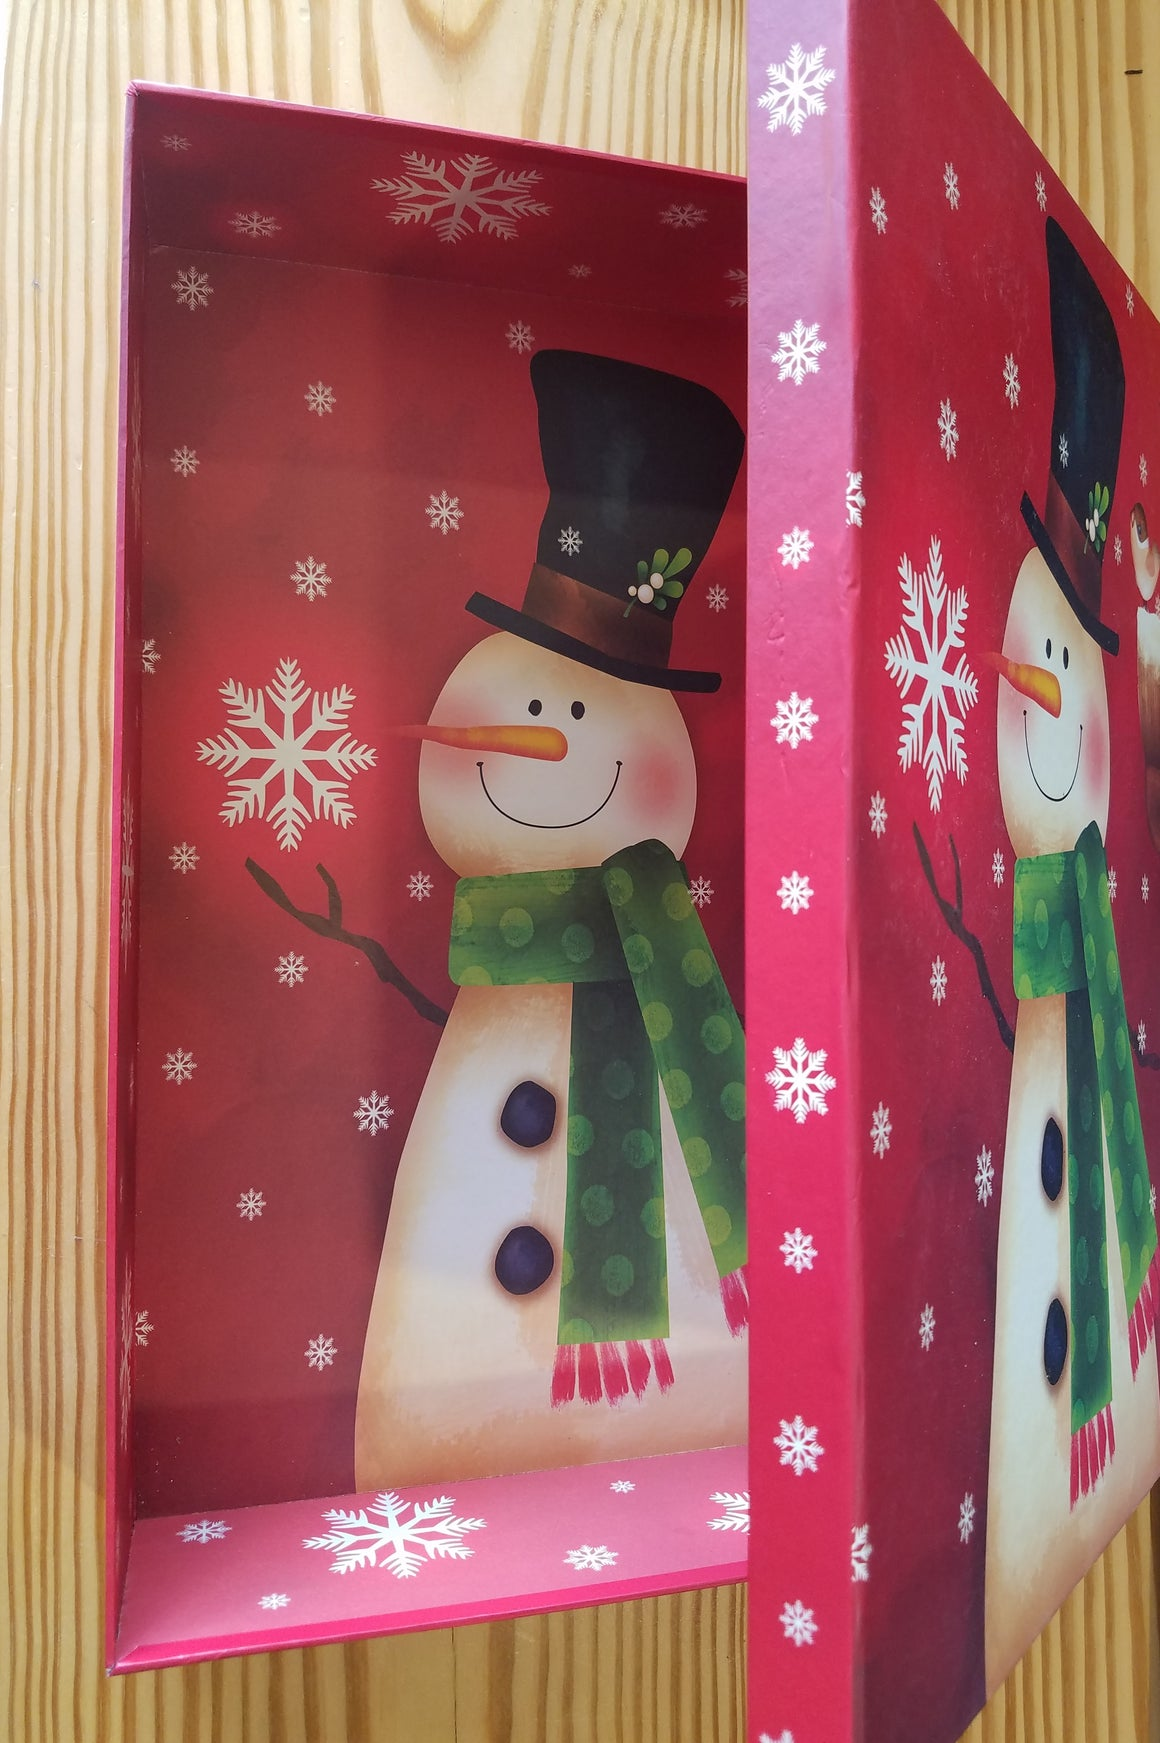 Christmas box - Vintage looking Snowman